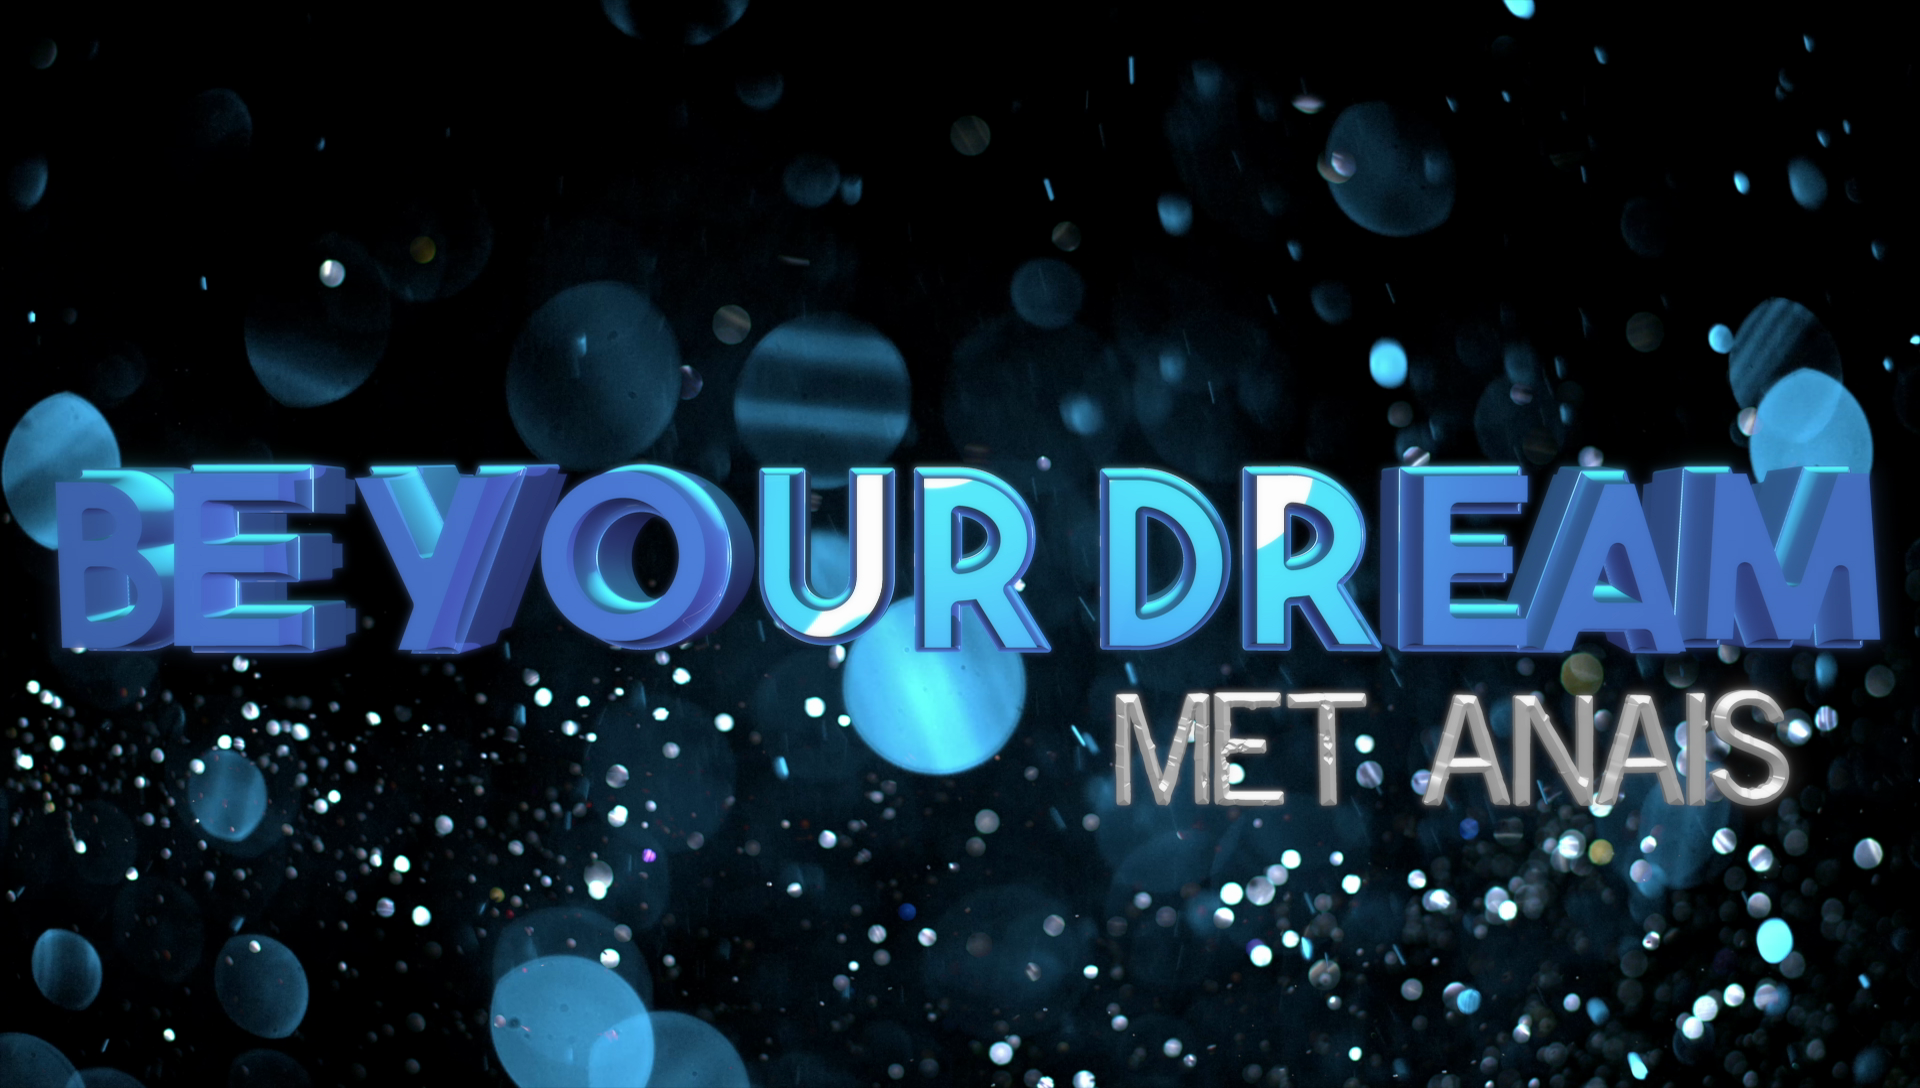 Be Your Dream met Anais